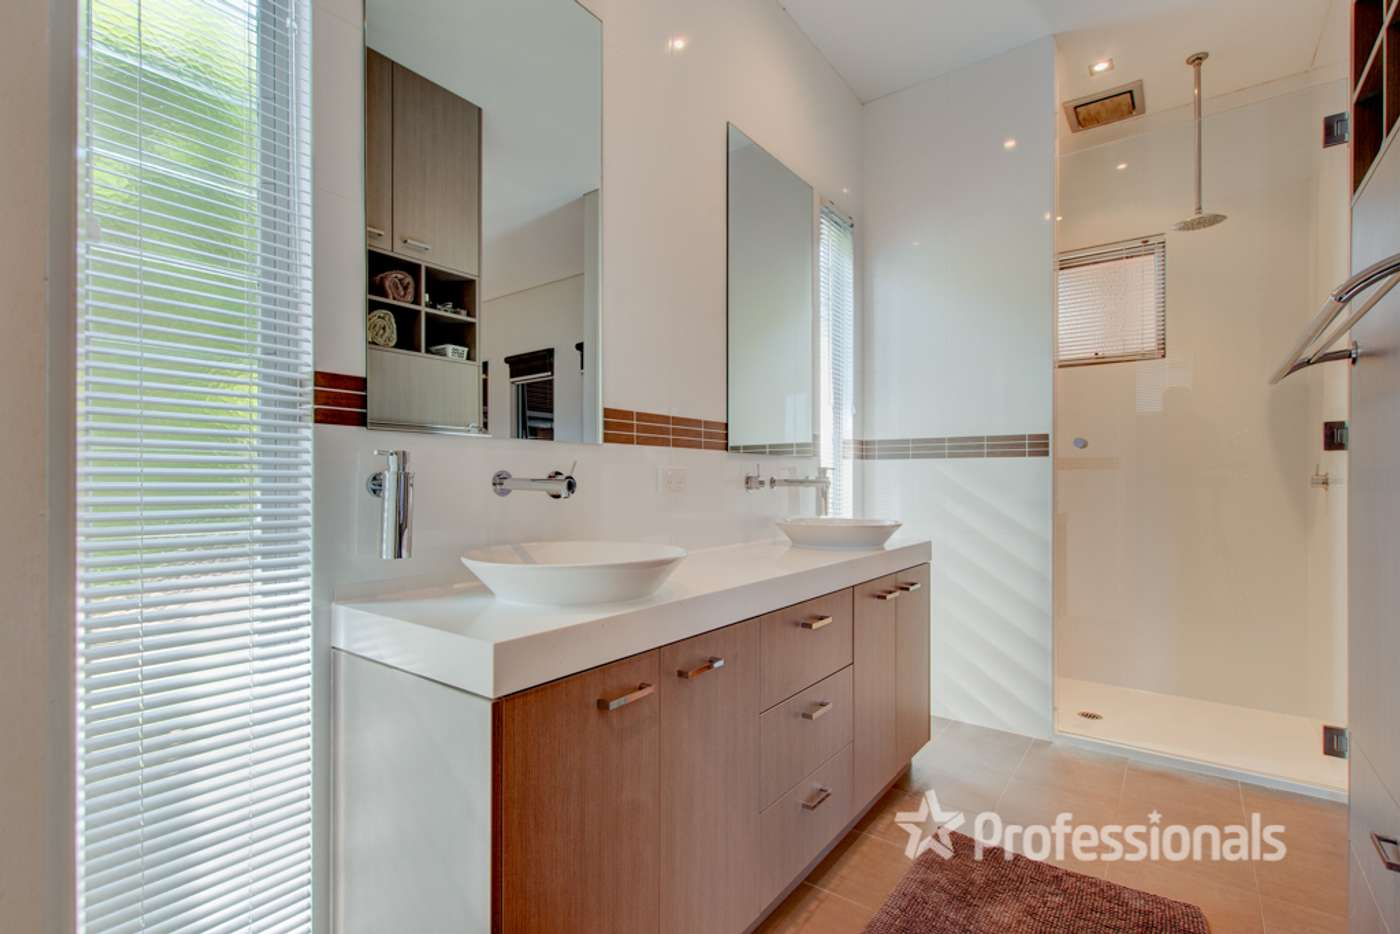 Fifth view of Homely house listing, 13 Cambridge Boulevard, Abbey WA 6280